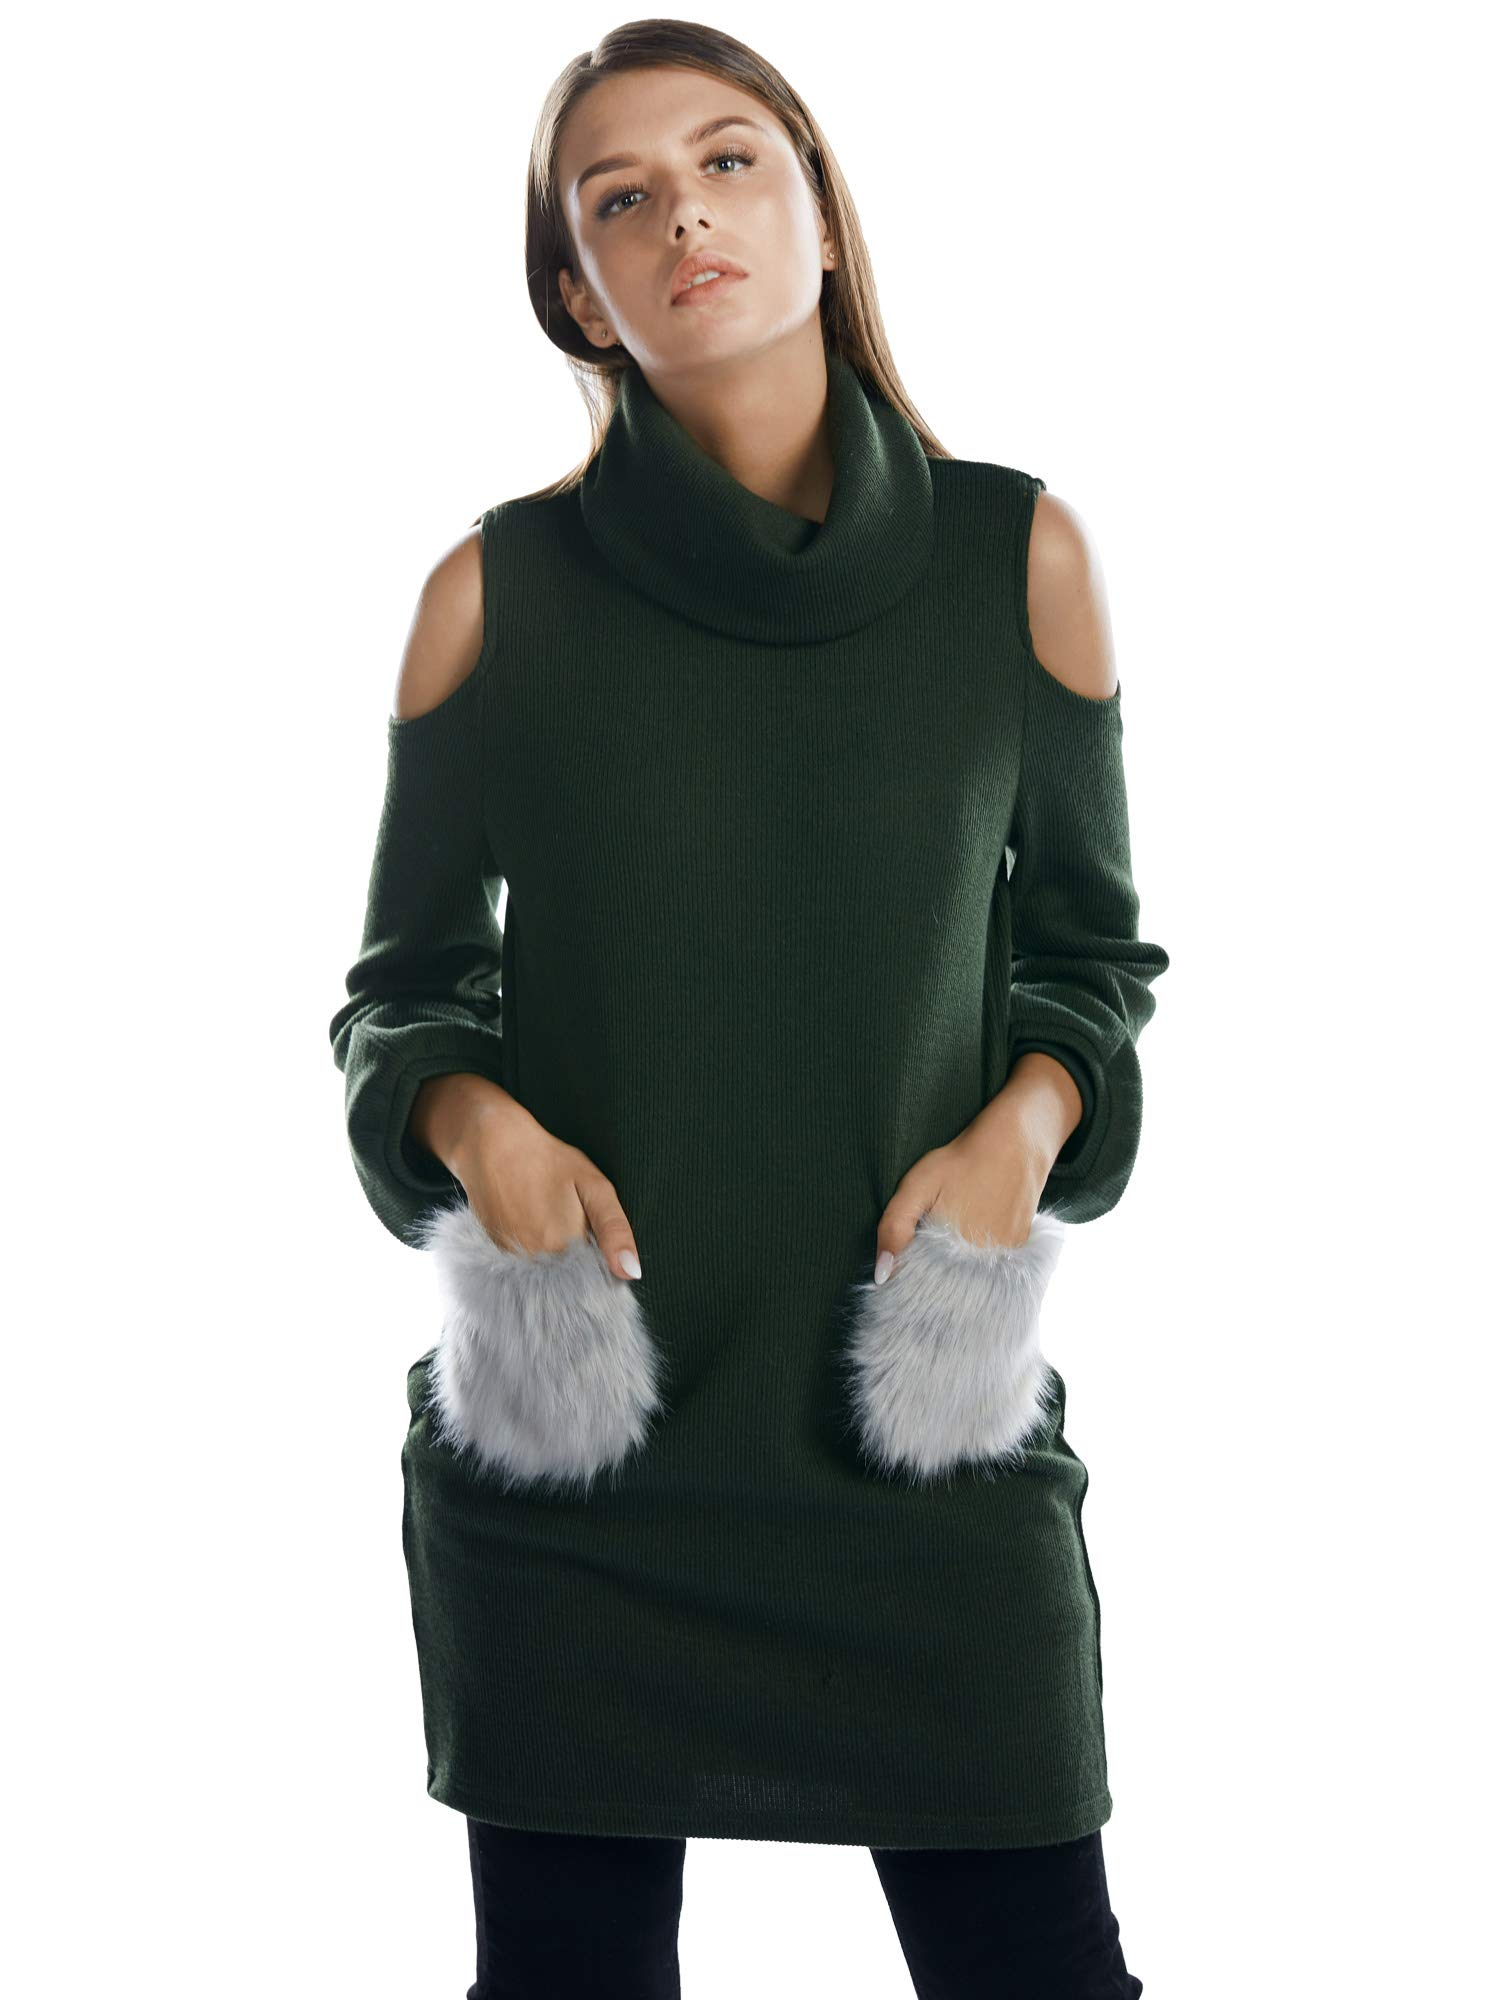 BARGOOS Women Chunky Turtleneck Cold Shoulder Balloon Sleeves Long Knitted  Sweater Dress Green Large 588bdb33d